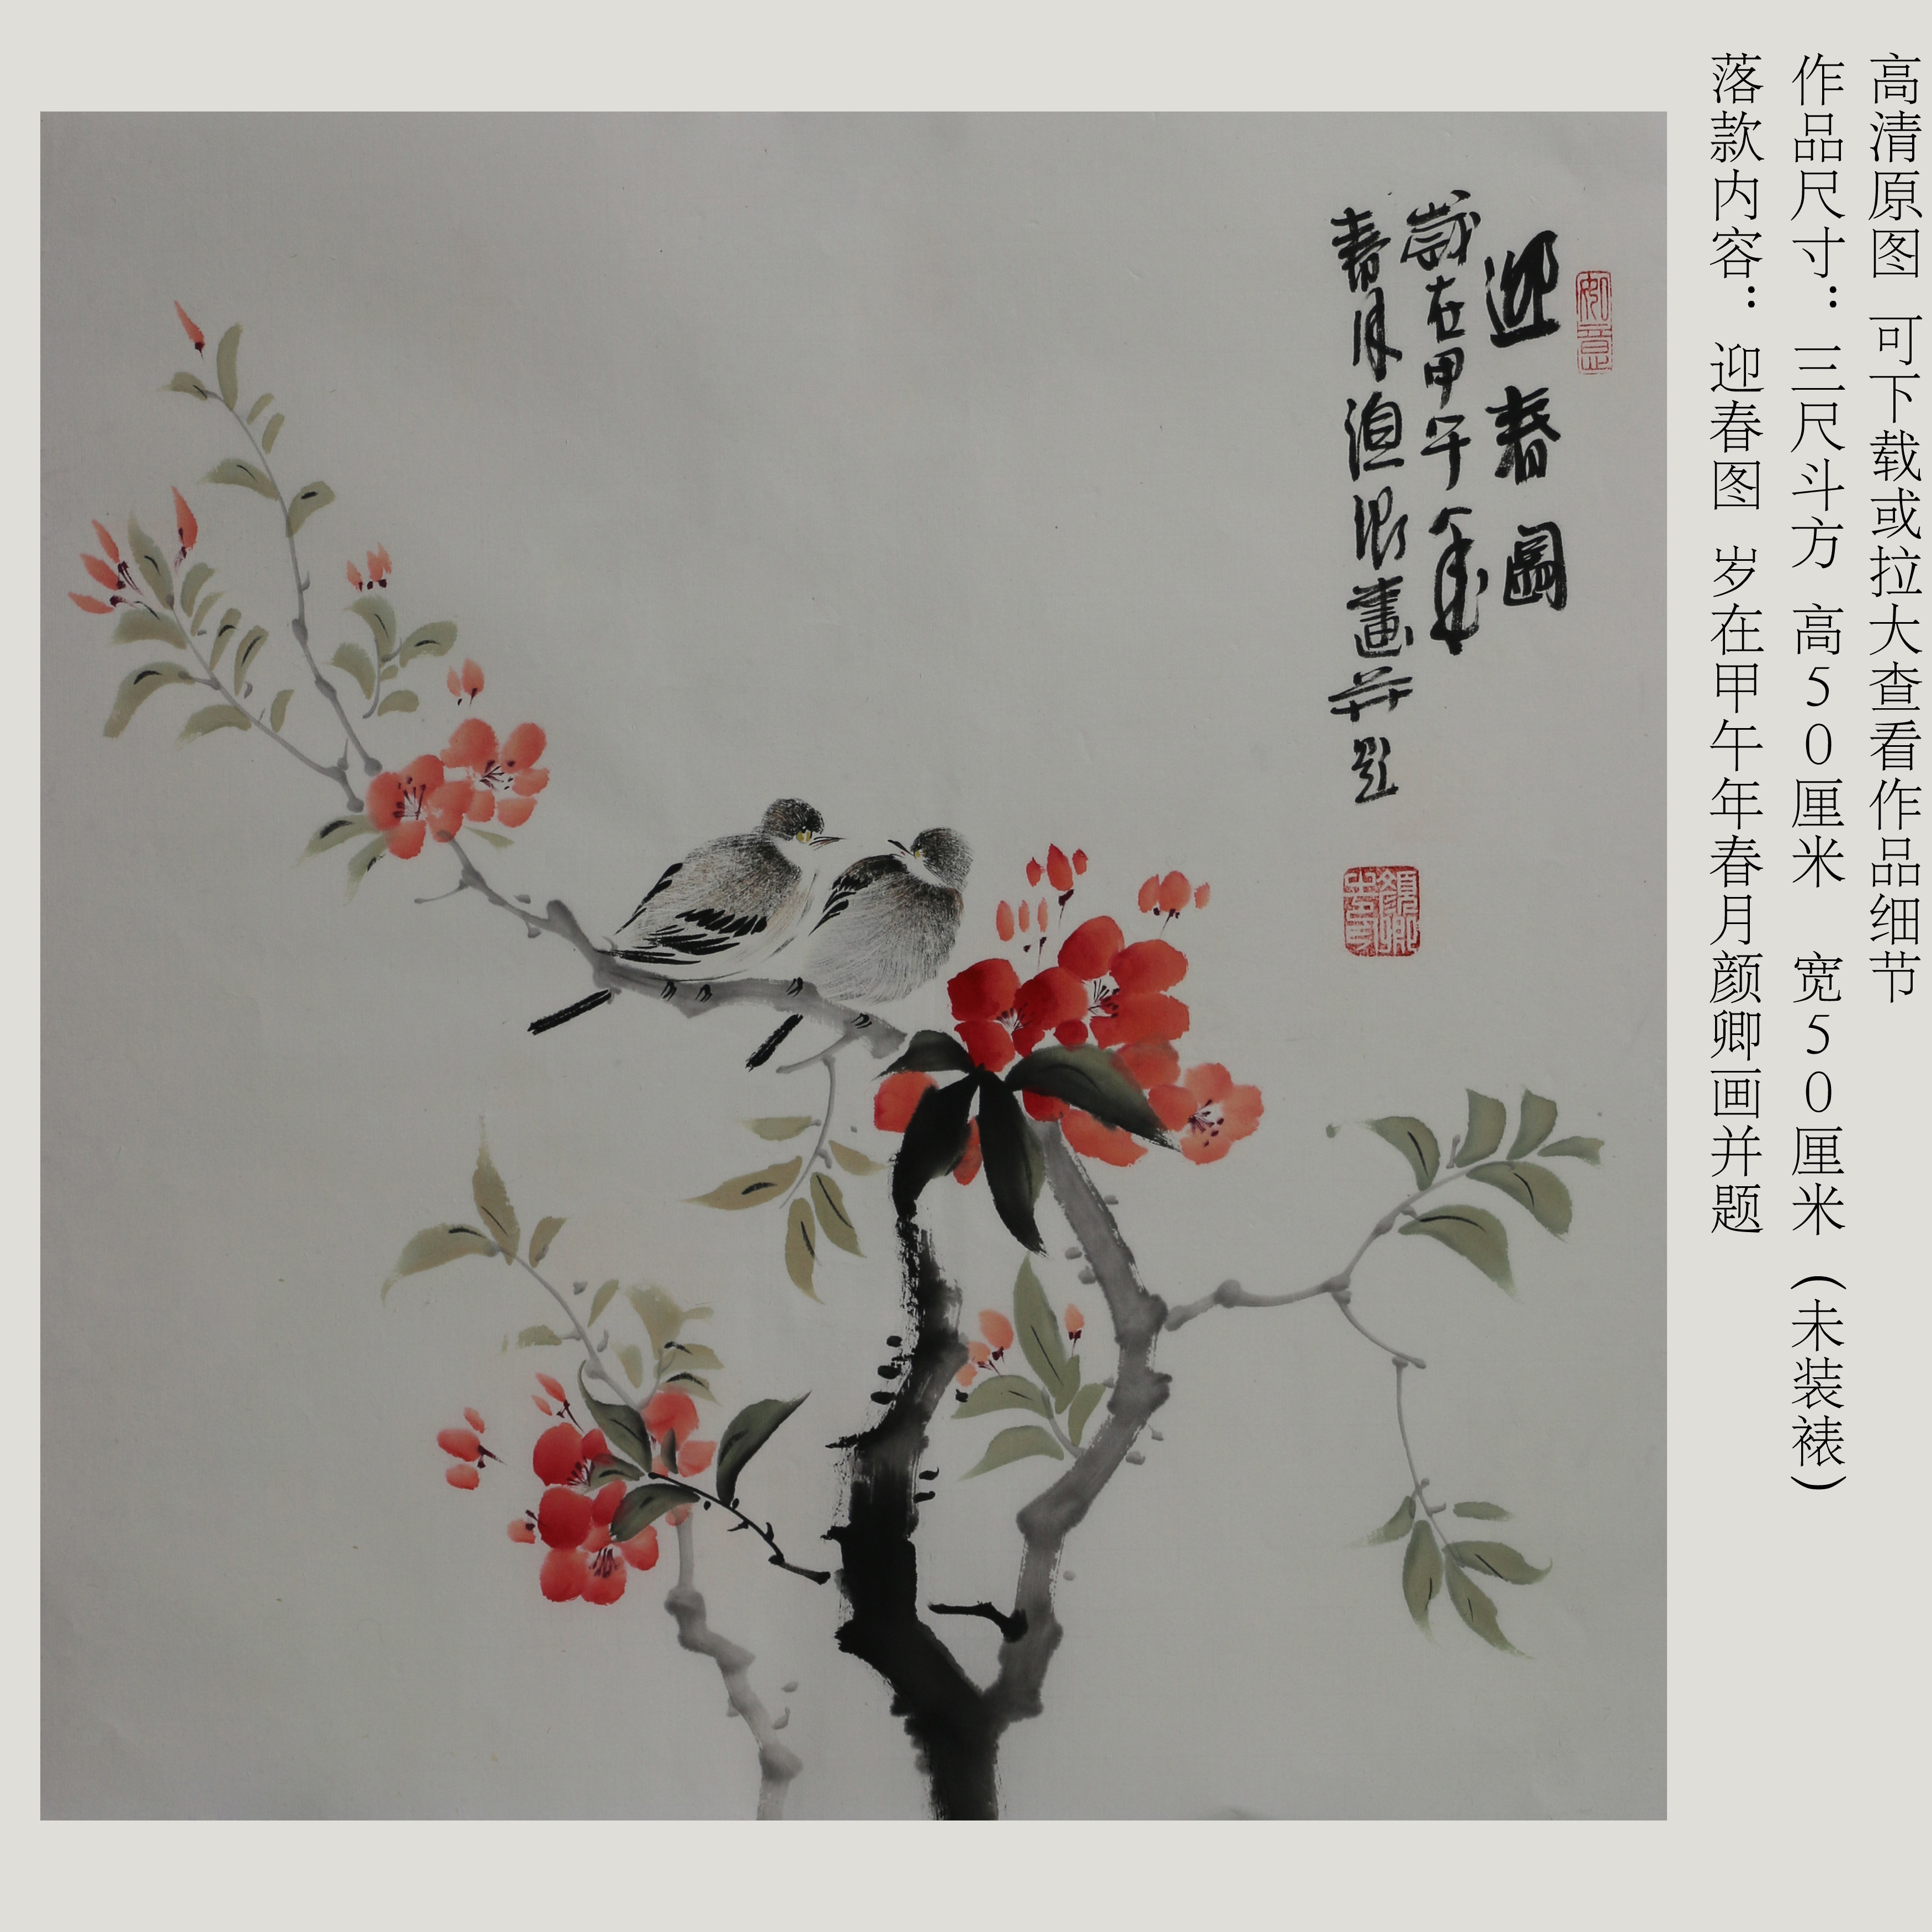 Hand painted authentic works of Chinese calligraphy and painting bedroom Chinese decorative painting living room wall painting Doufang freehand brushwork flower and bird painting